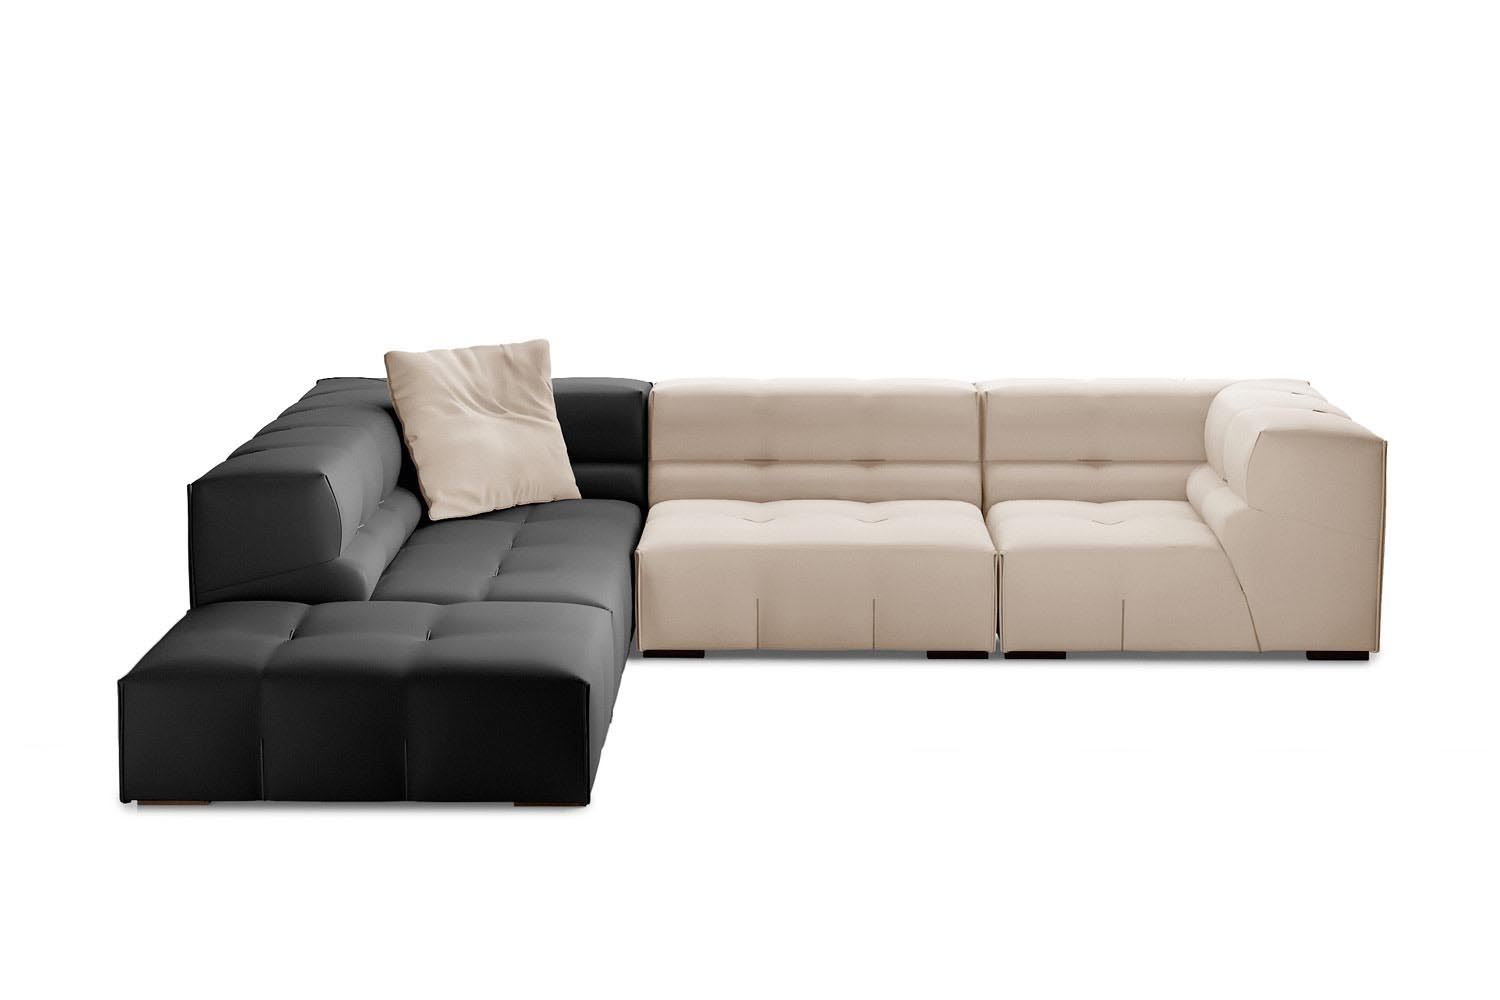 Sedia Urquiola B&amp Tufty Too Sofa By Patricia Urquiola For B B Italia Space Furniture